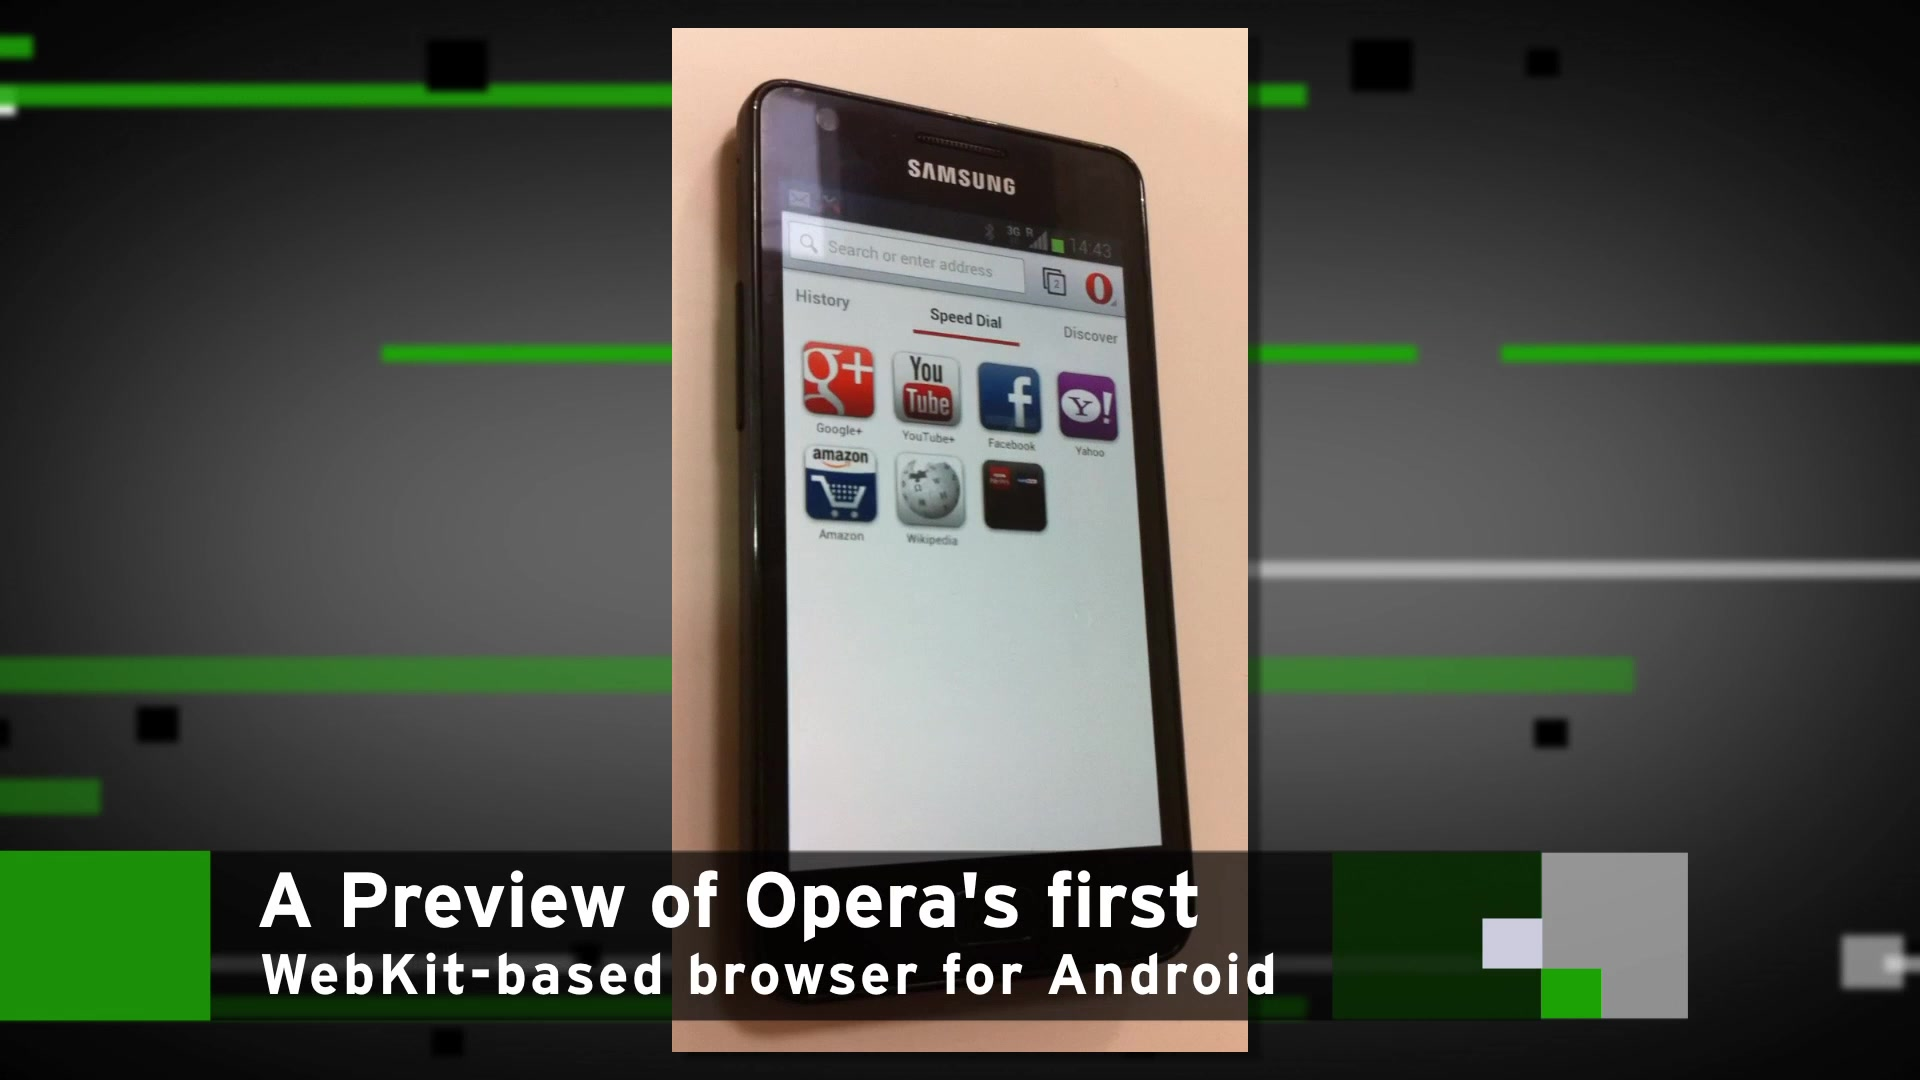 Preview of Opera's First WebKit-Based Browser For Android